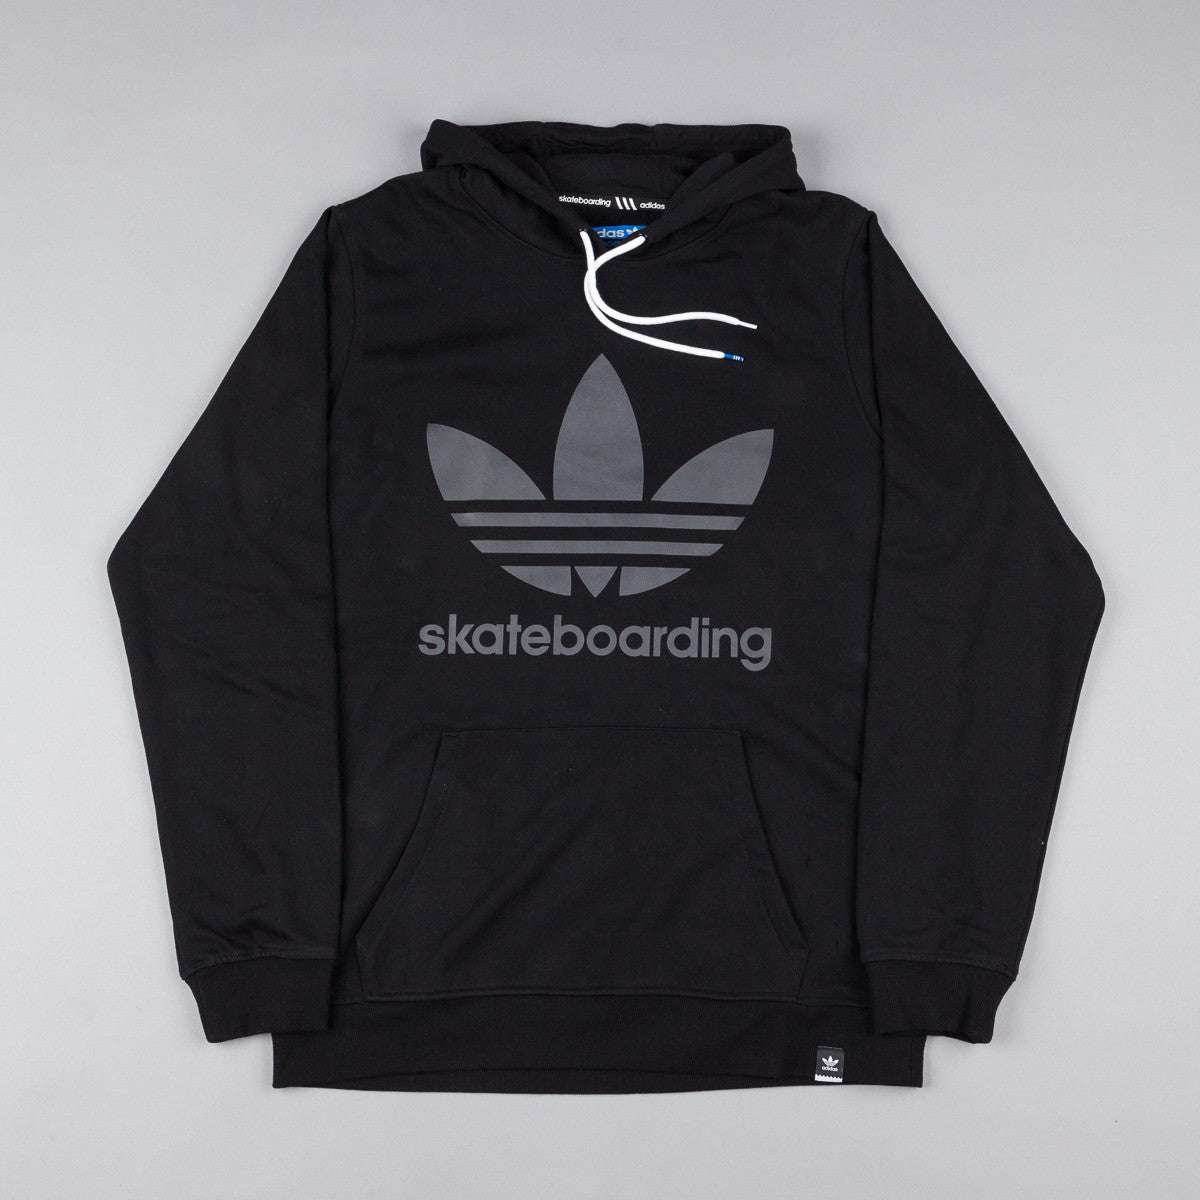 Adidas Adv Hooded Sweatshirt - Black / Carbon